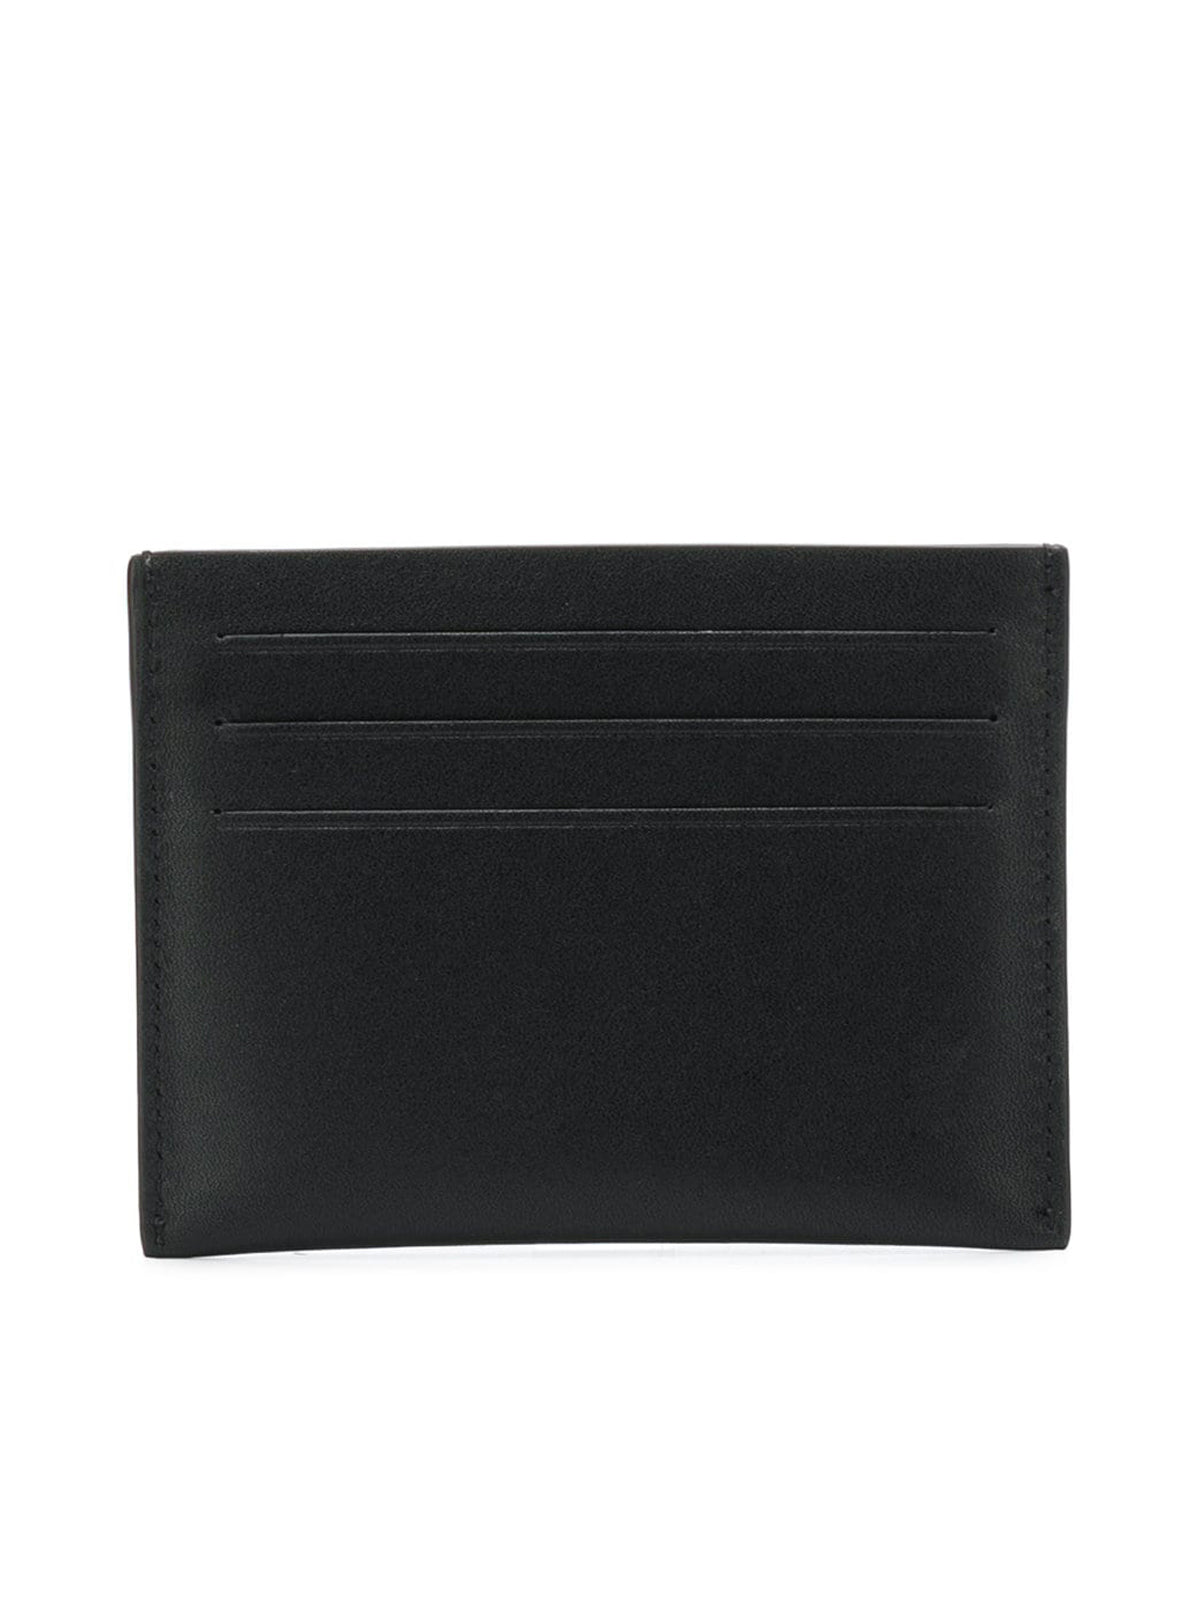 LOGO CARD HOLDER